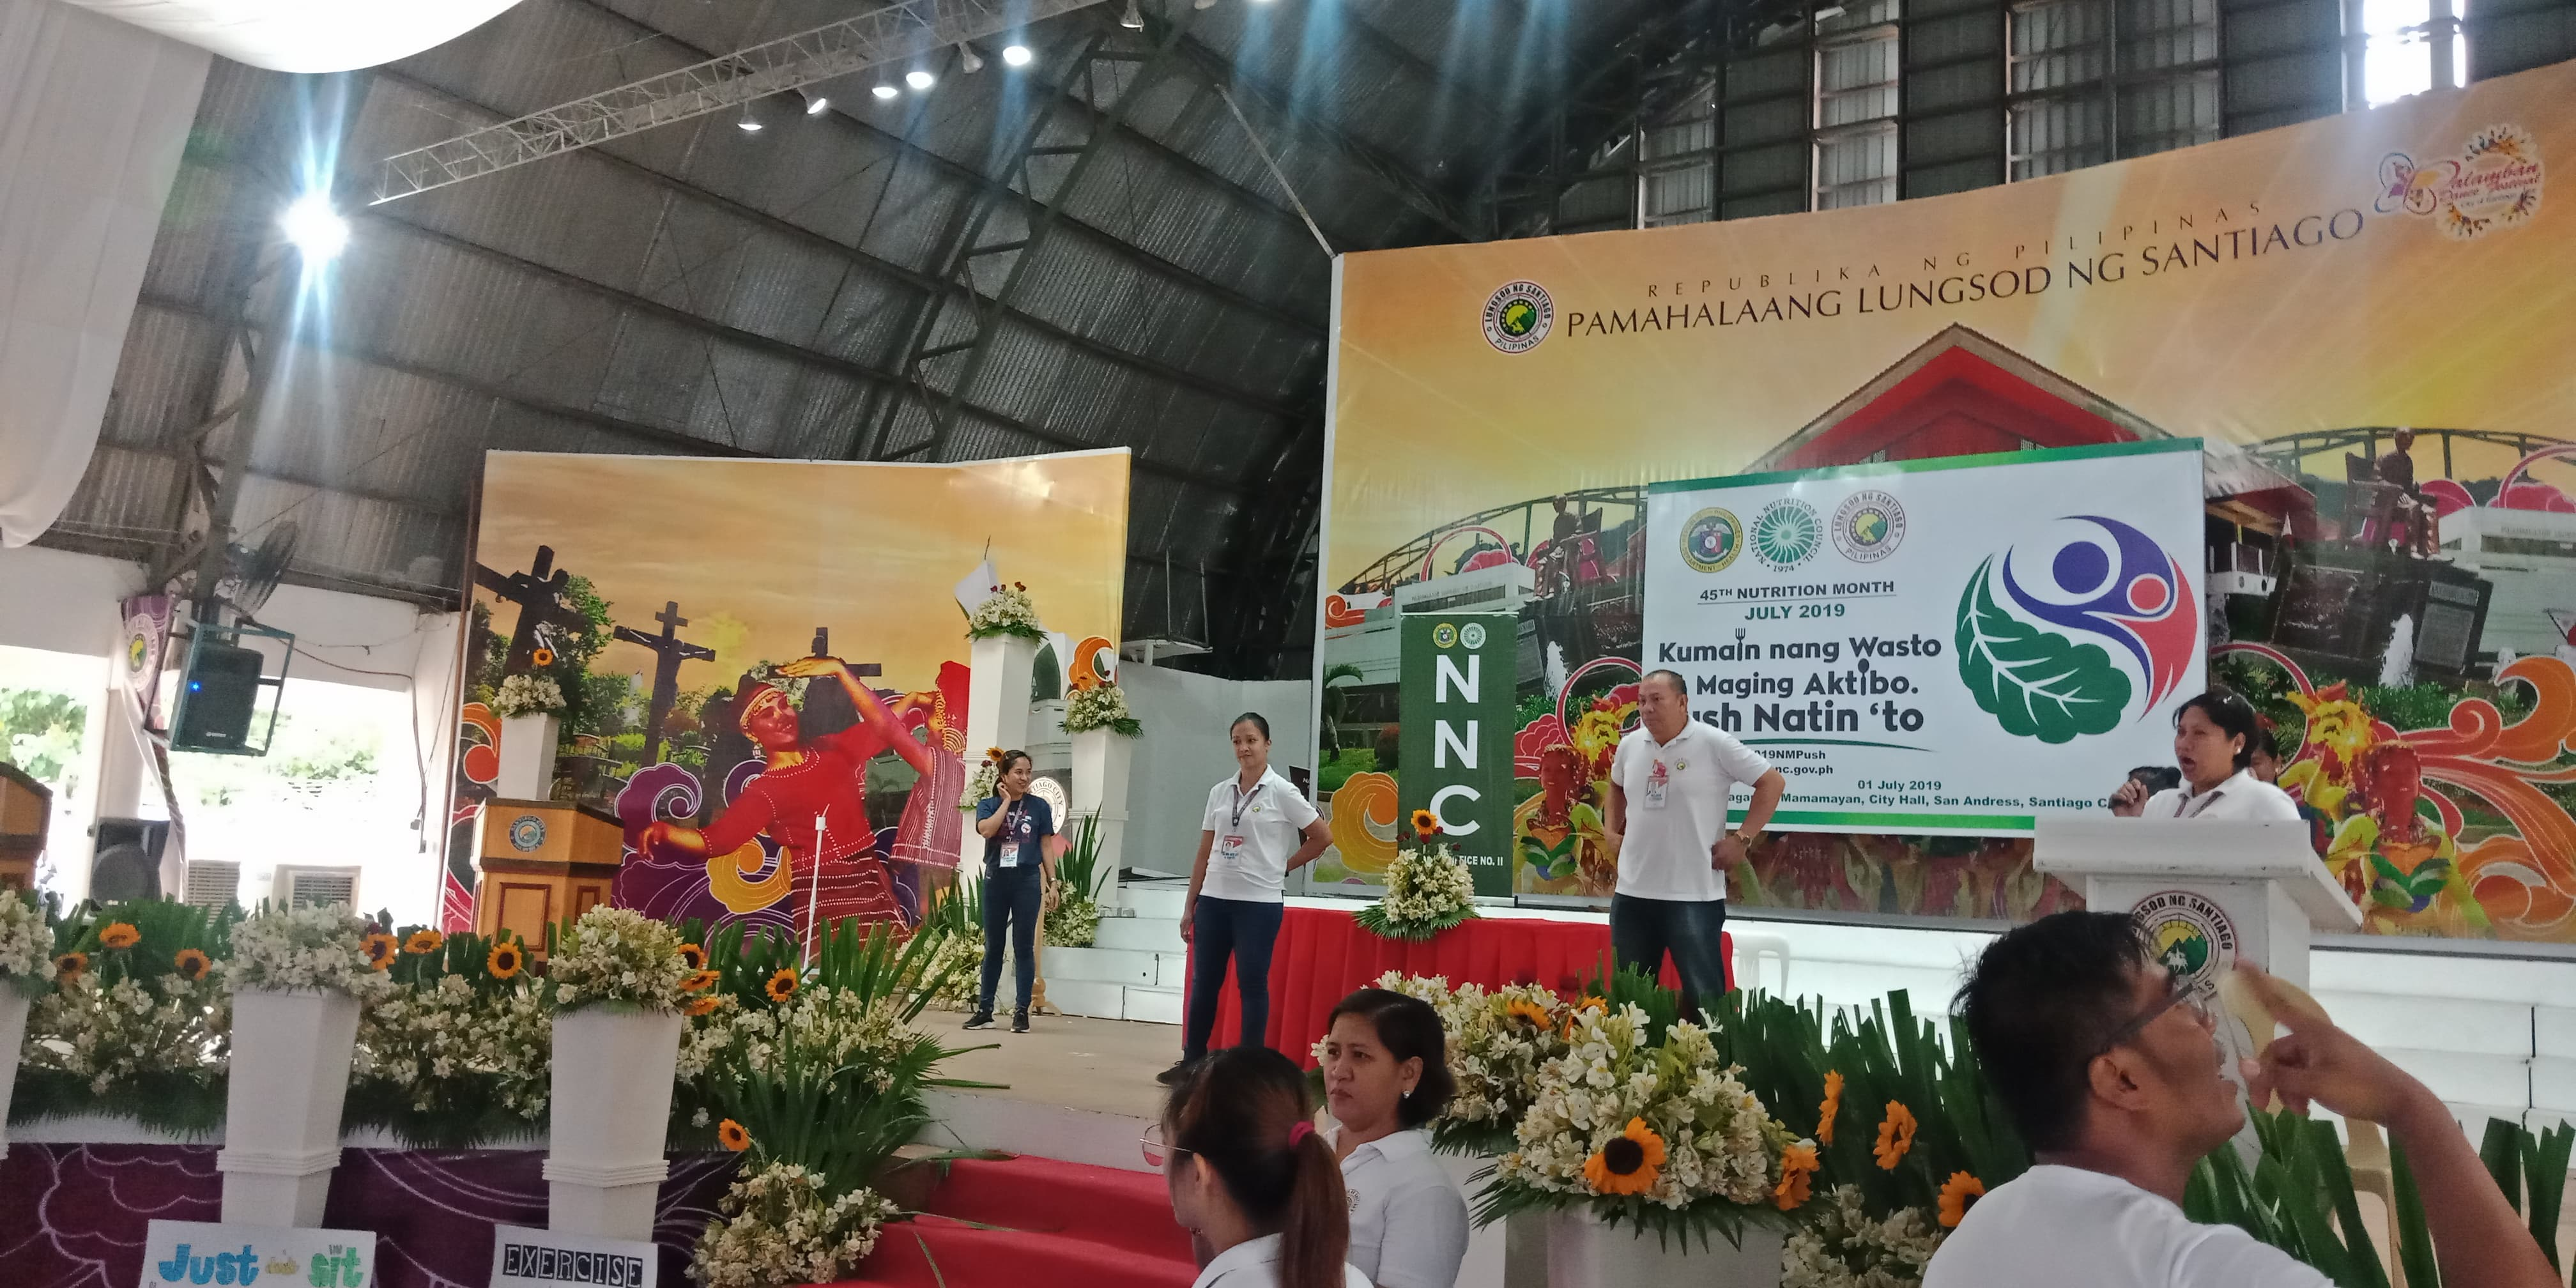 45th regional nutrition month opens on 1st monday of july the northern forum